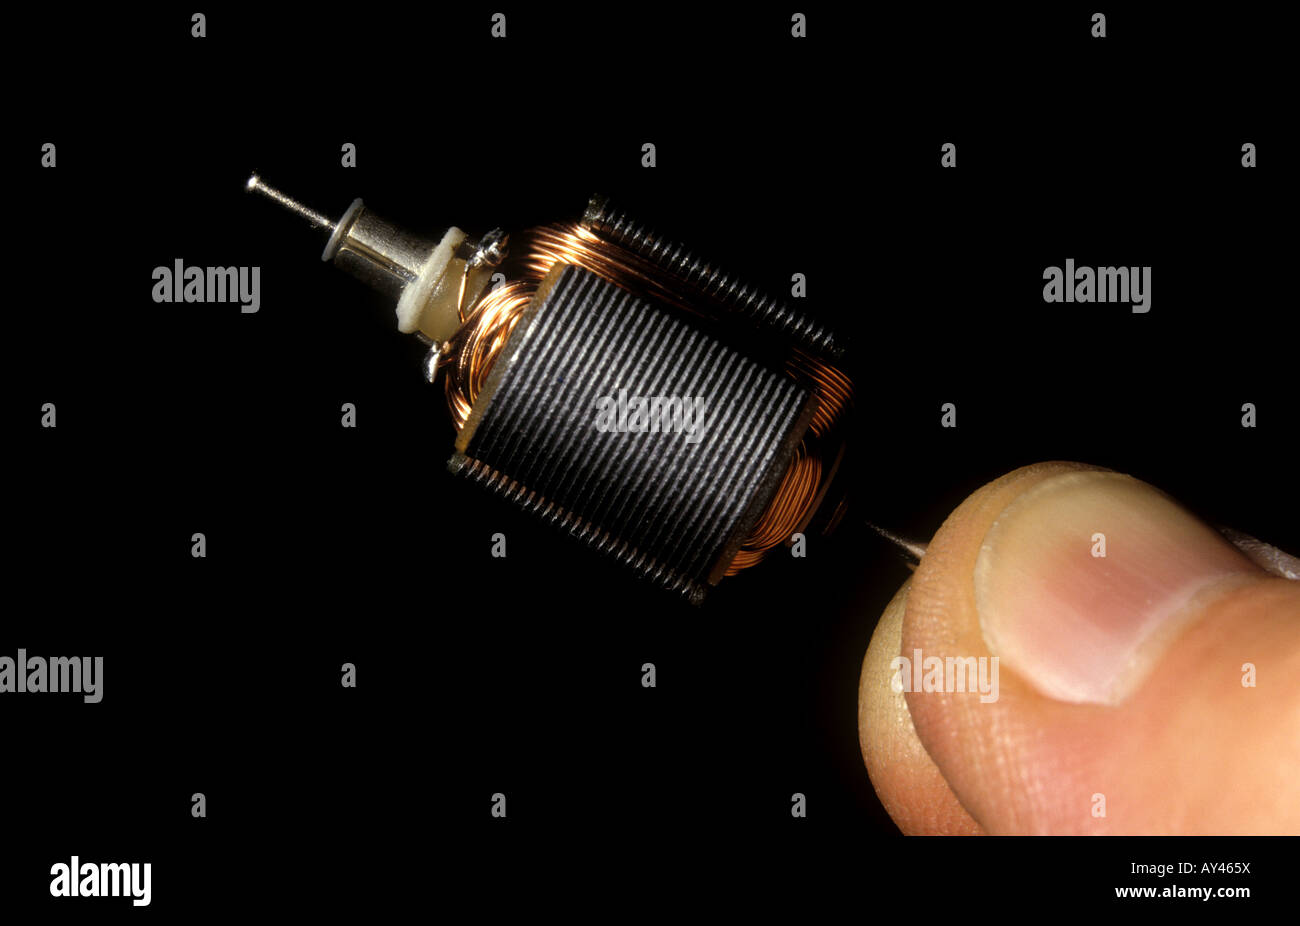 dc armature and commutator of small electric motor - Stock Image